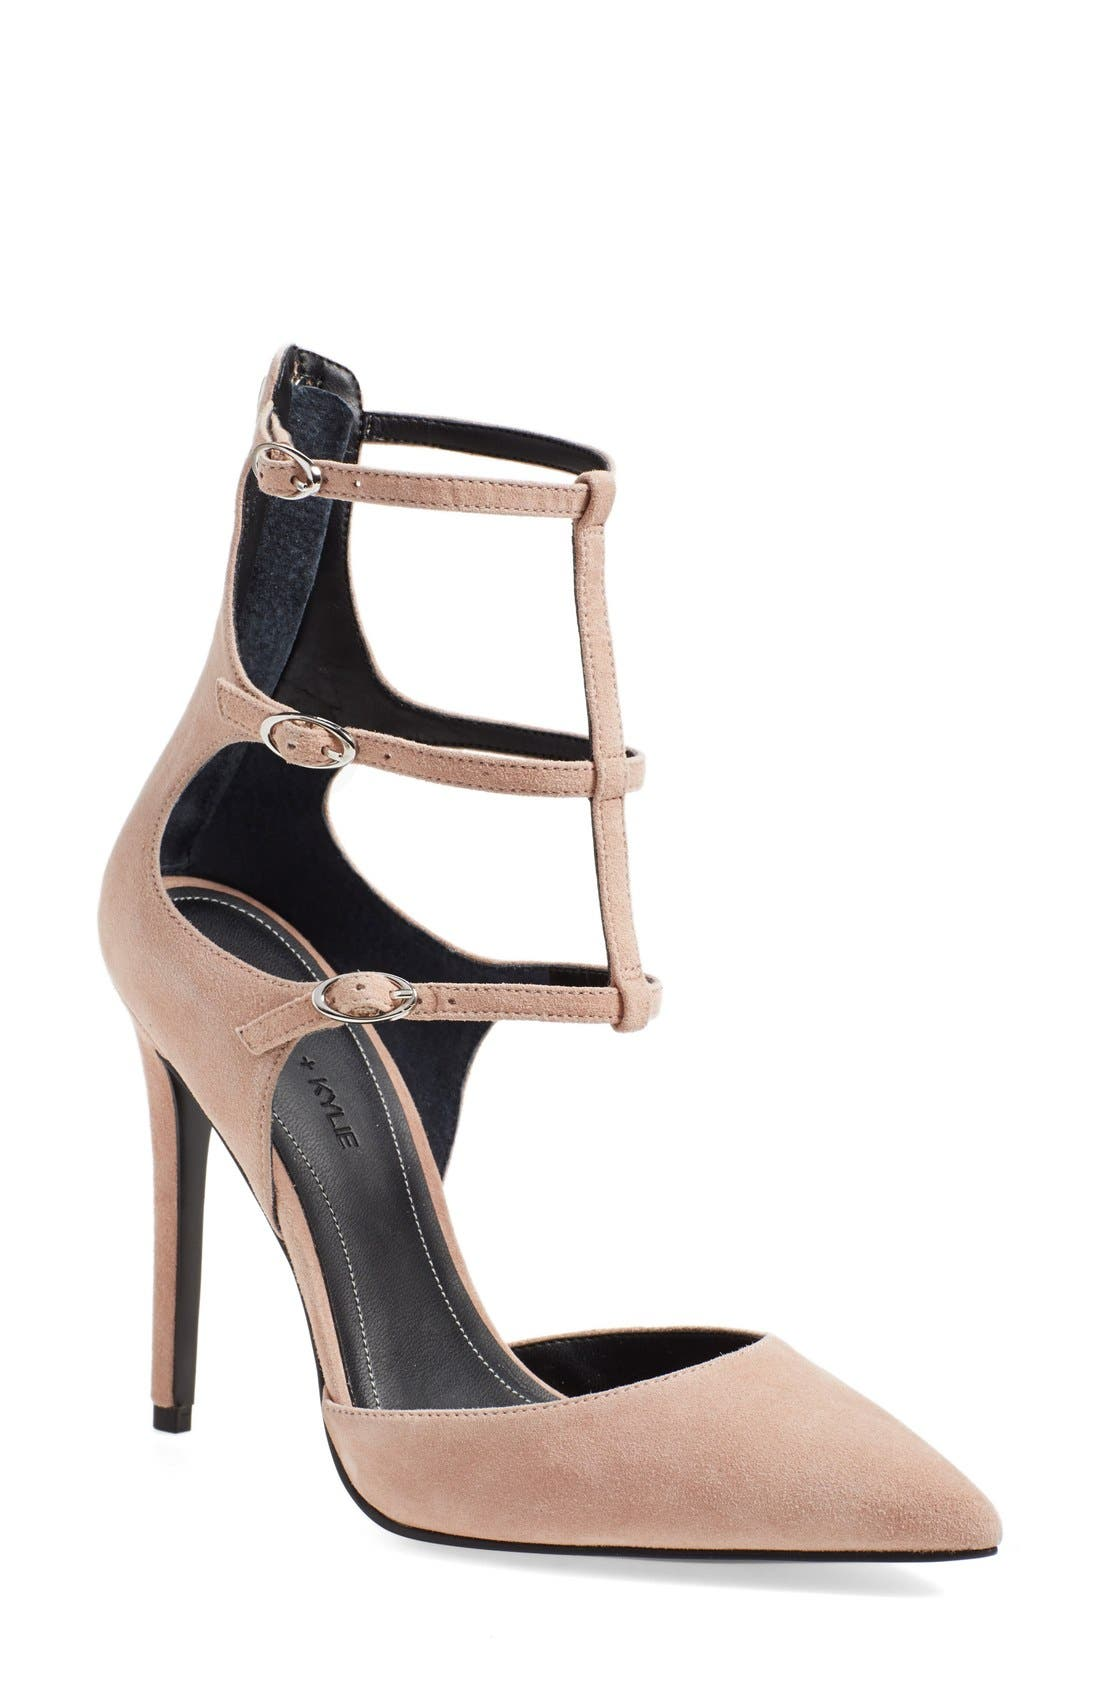 Main Image - KENDALL + KYLIE 'Alisha' Tiered Ankle Strap Pump (Women)